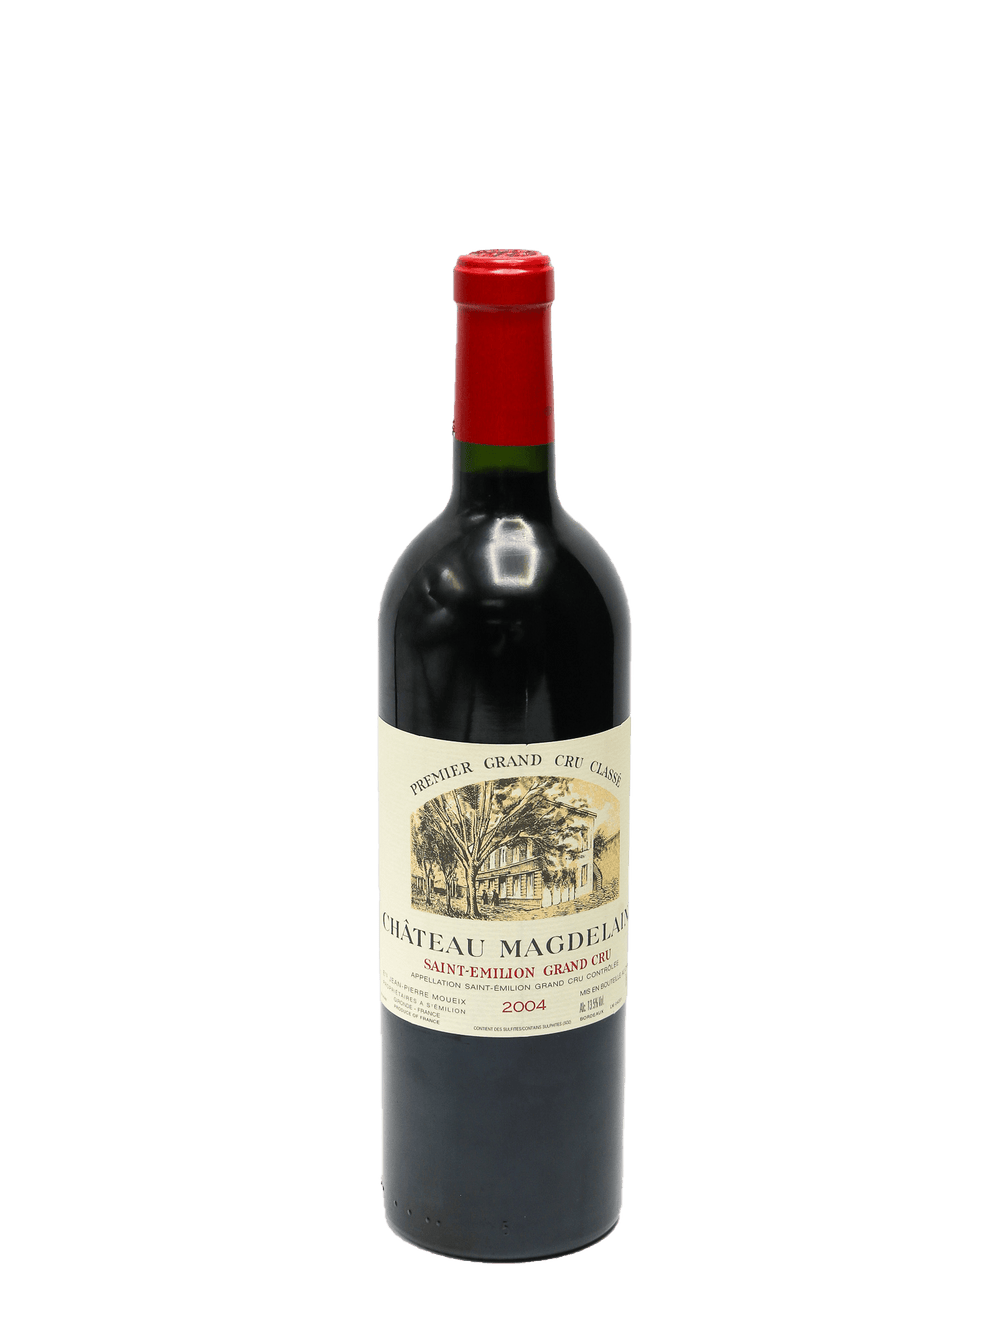 2004 Chateau Magdelaine Saint-Emillion Grand Cru